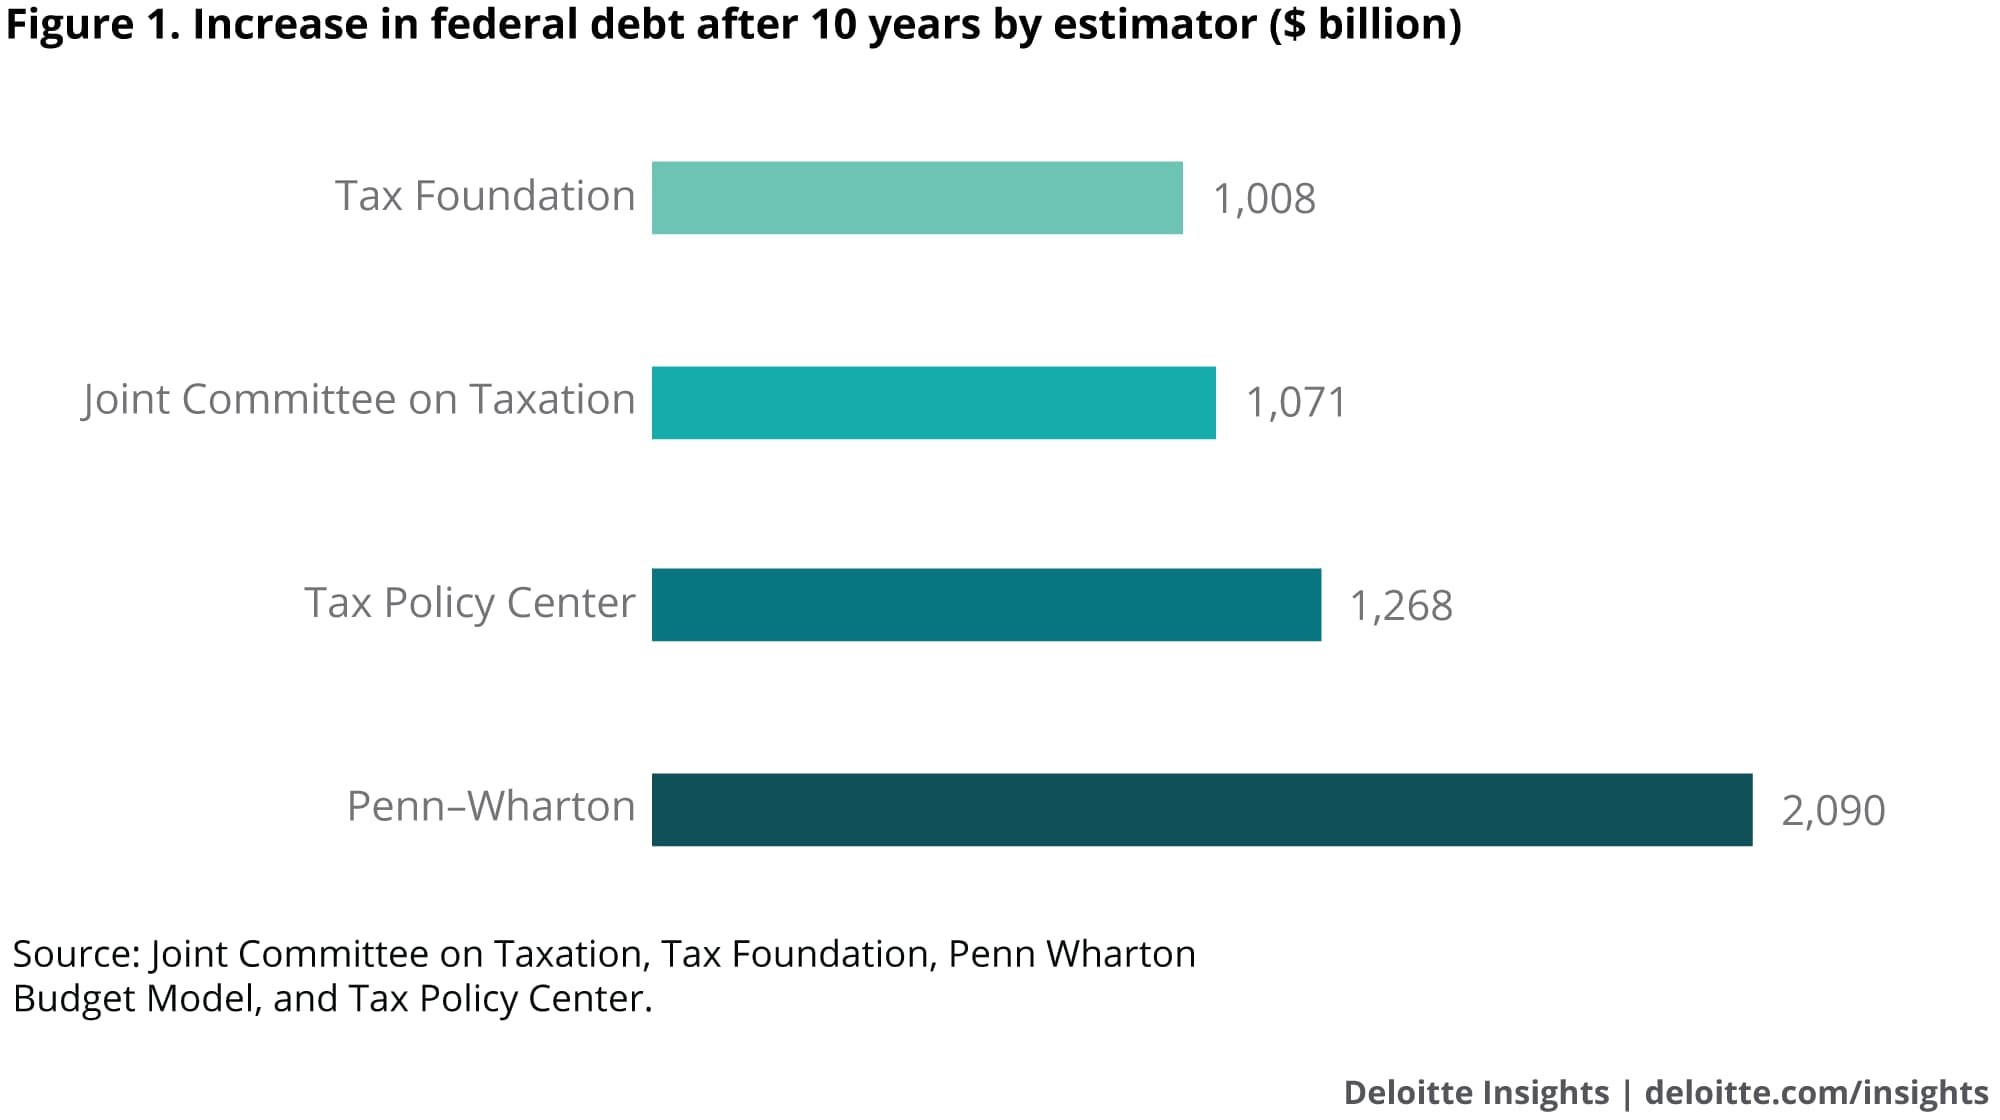 Increase in federal debt after 10 years by estimator ($ billion)